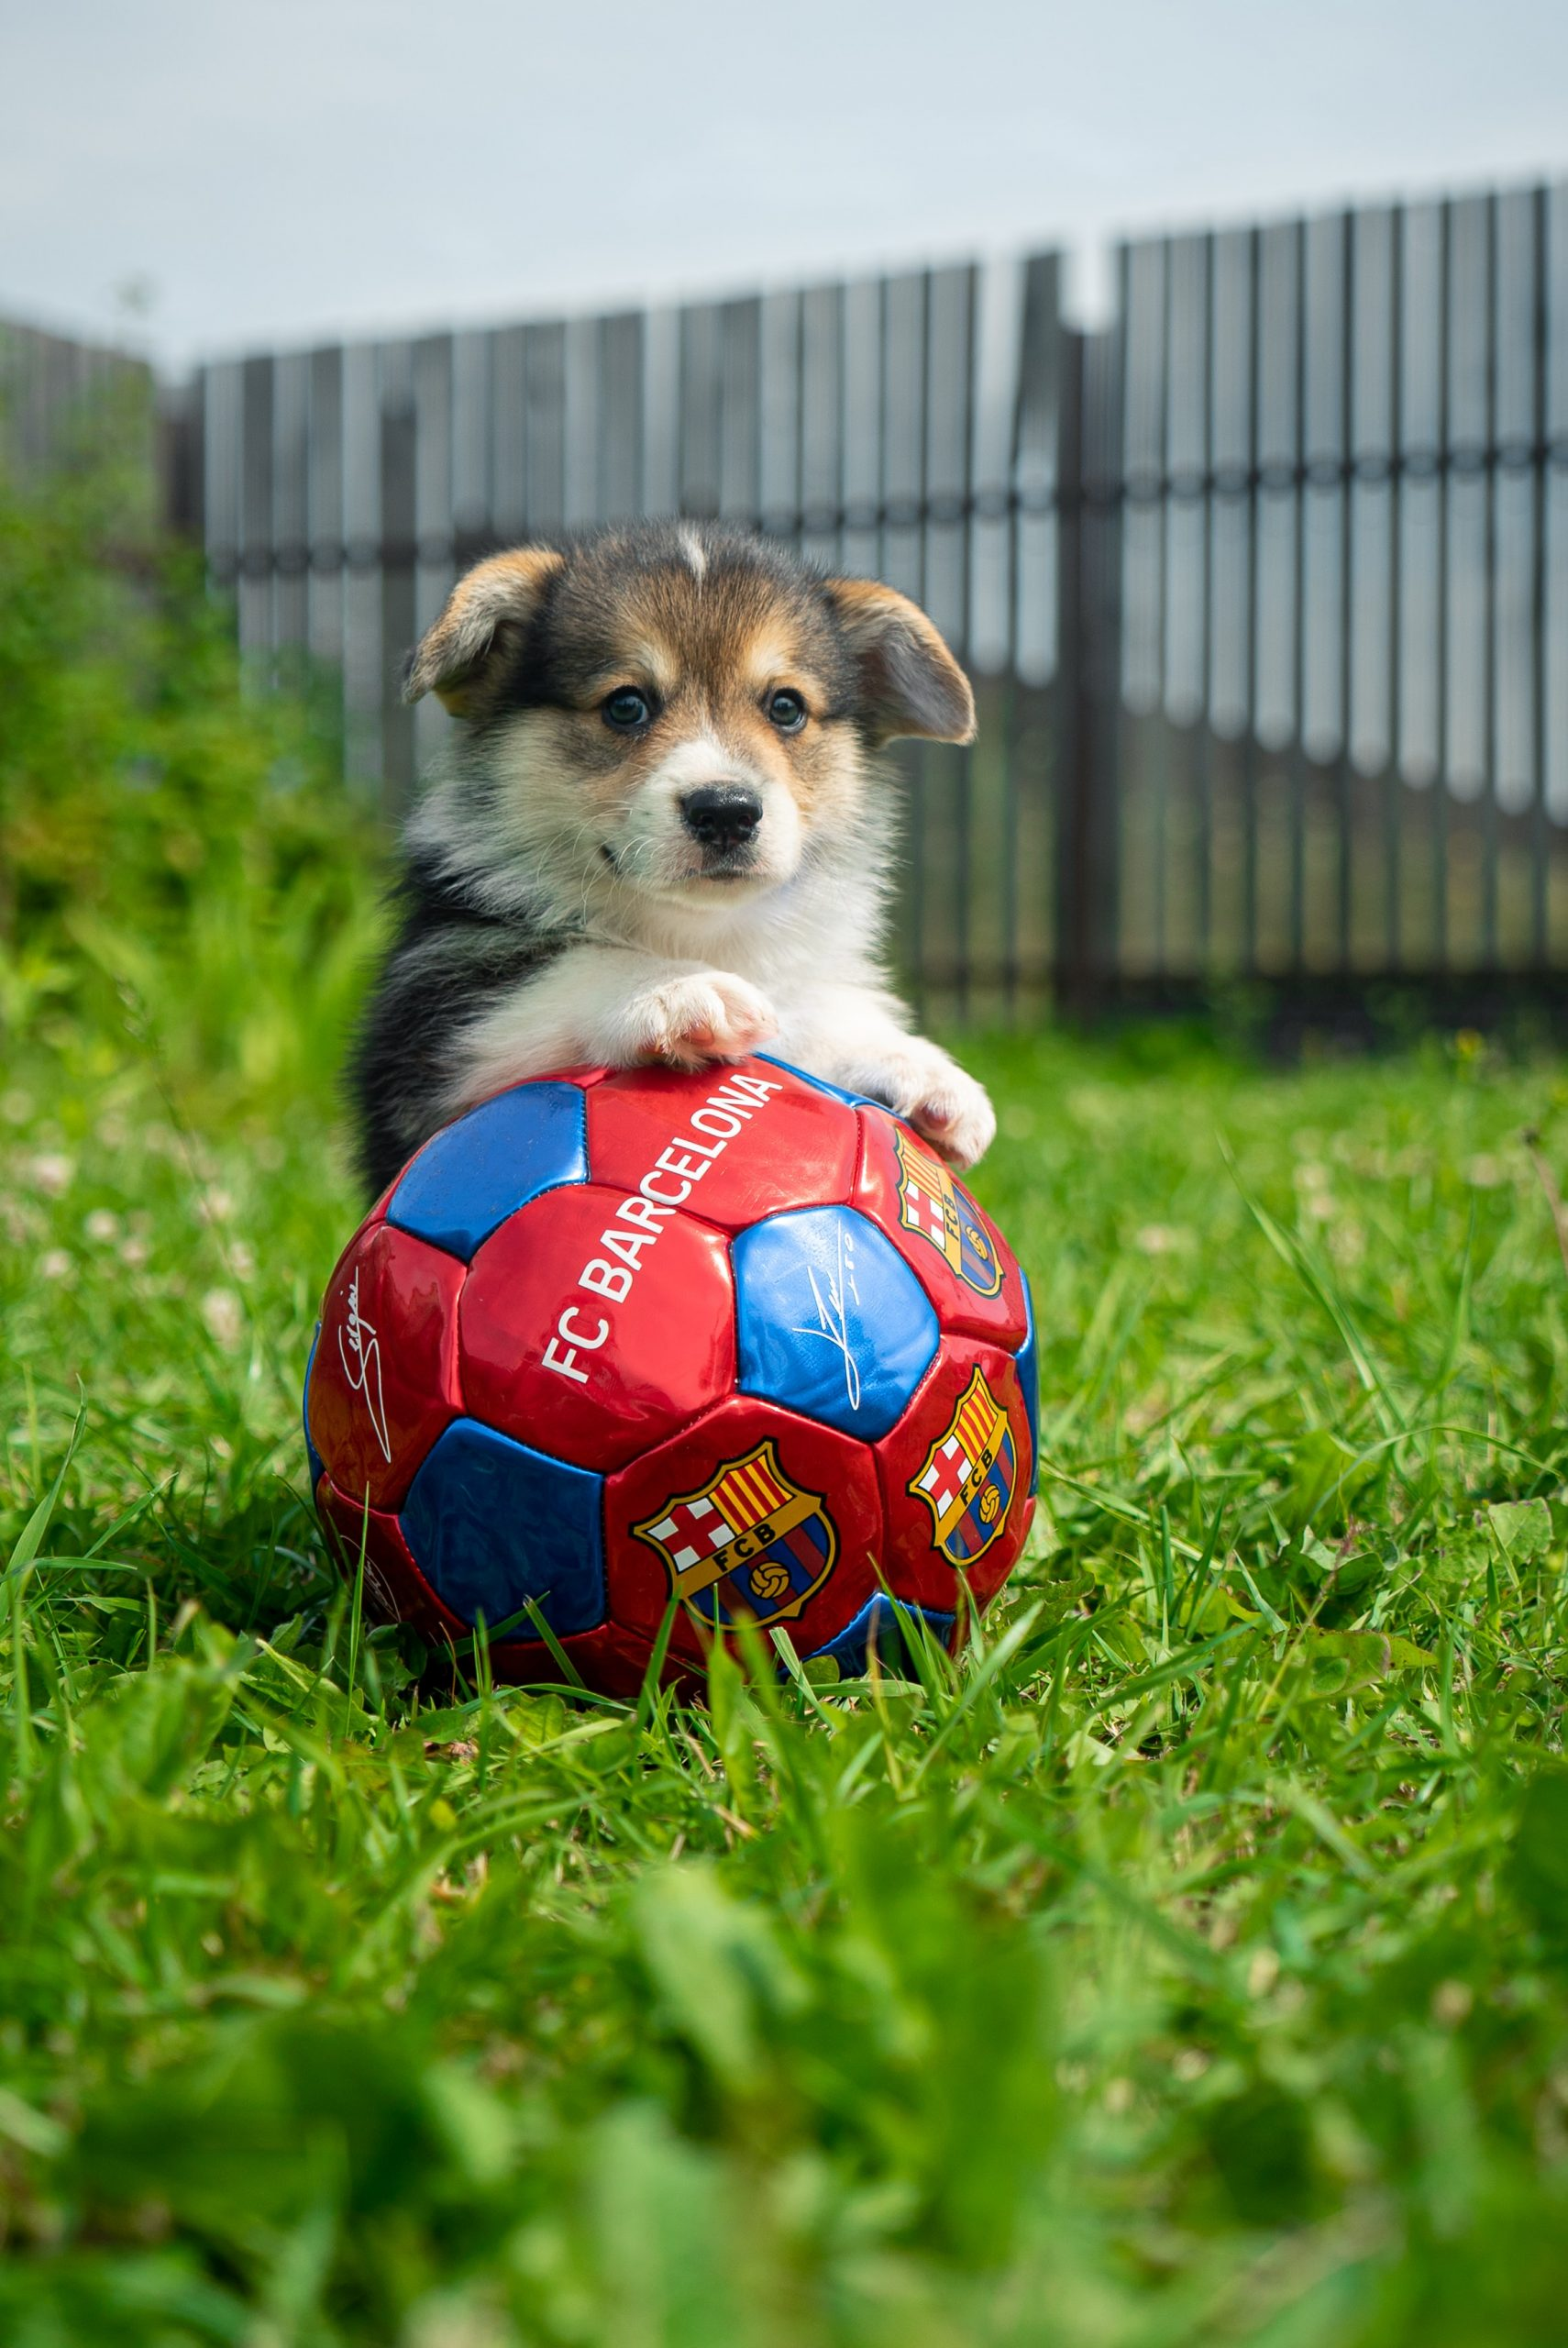 Cute puppy in the grass posing with a soccer ball.